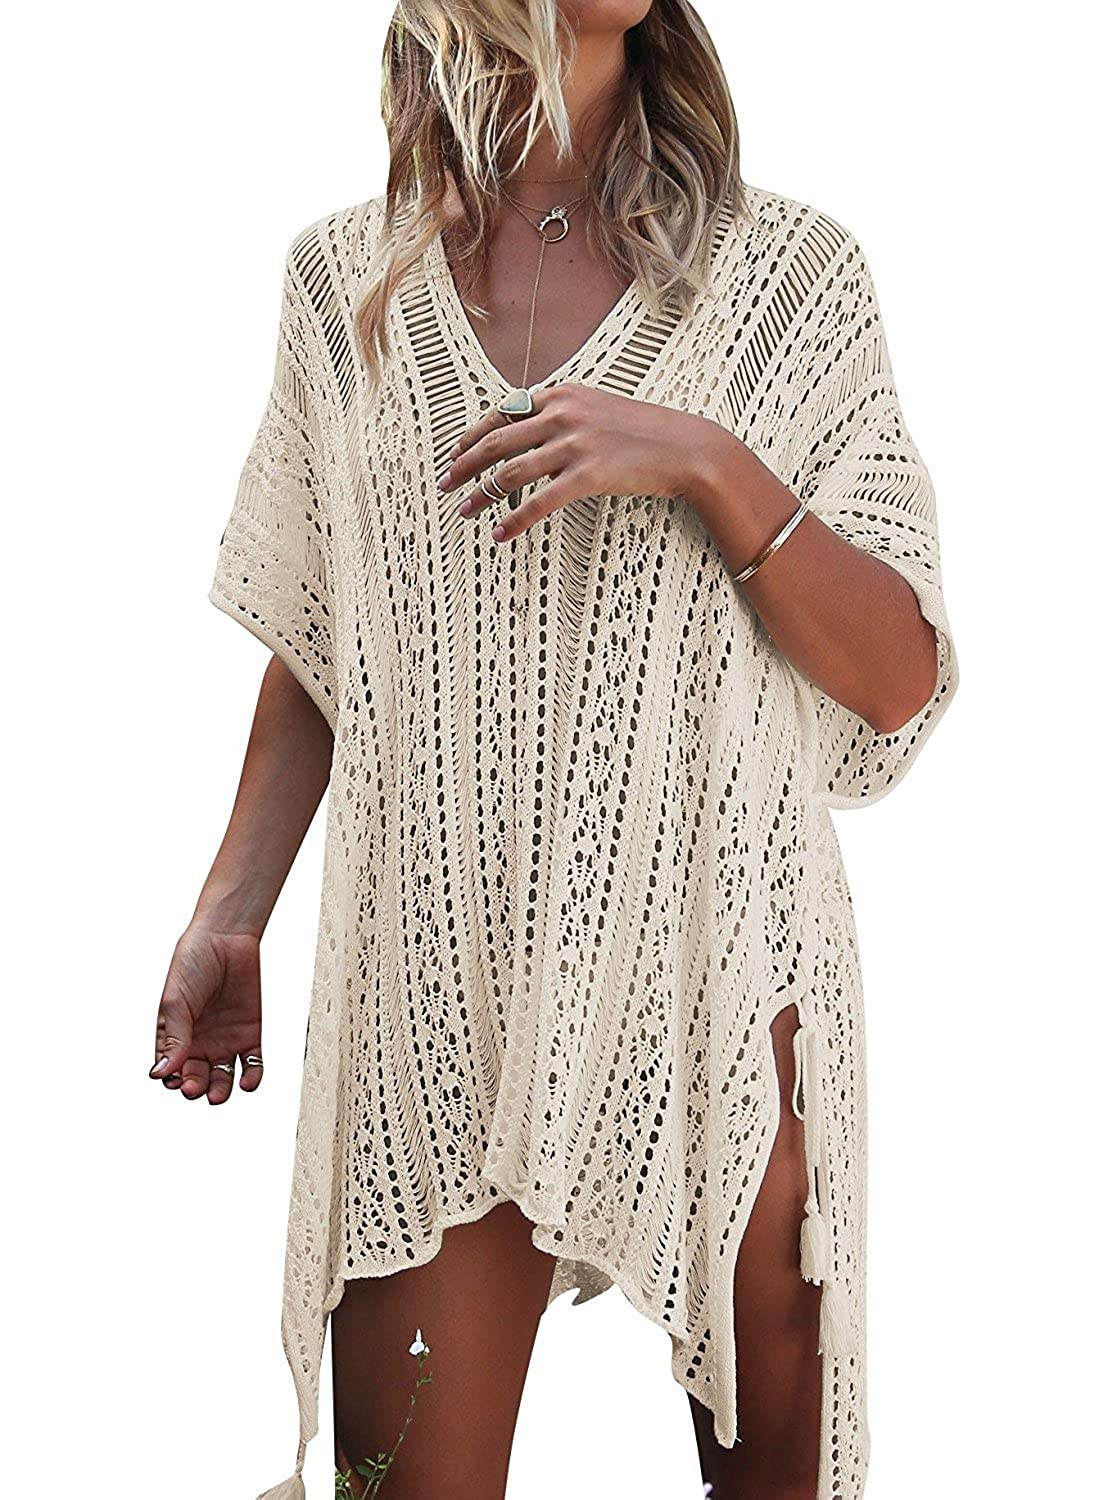 8d2d17d4ab This beach bikini cover up is made of crochet Design. The material is very  soft and comfortable. This bathing suit cover up is ...